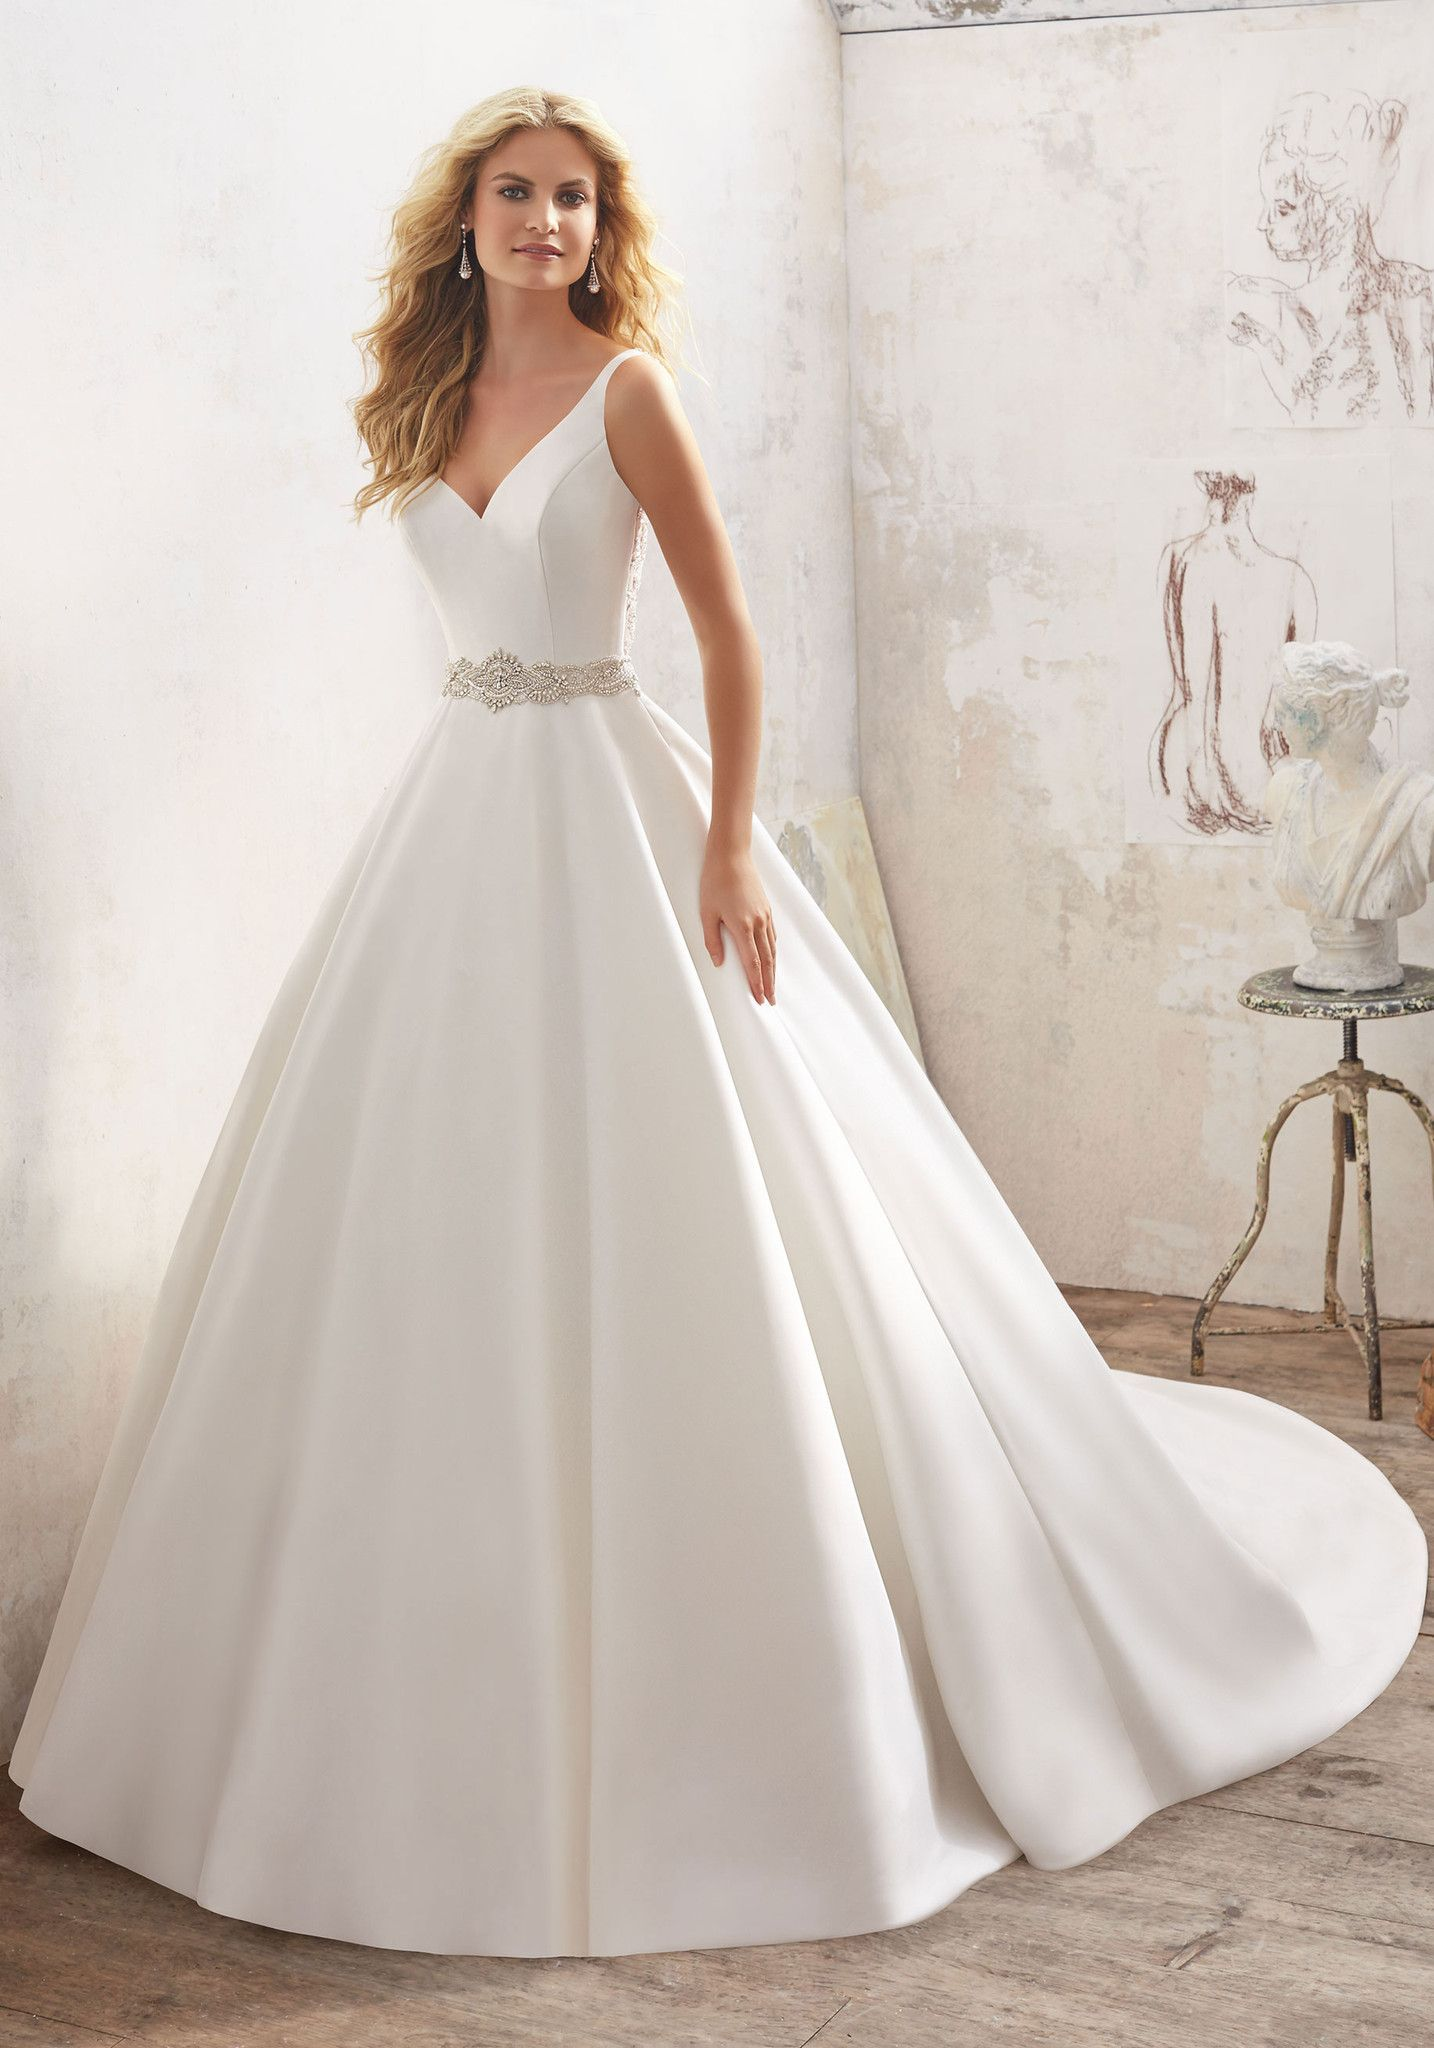 Understated and Elegant, This Stunning Marcella Satin A-Line Bridal Gown Features a Crystal Beaded Sheer Back and Waistline. Covered Buttons Trim the Back and Train. Available in White/Silver, Ivory/S